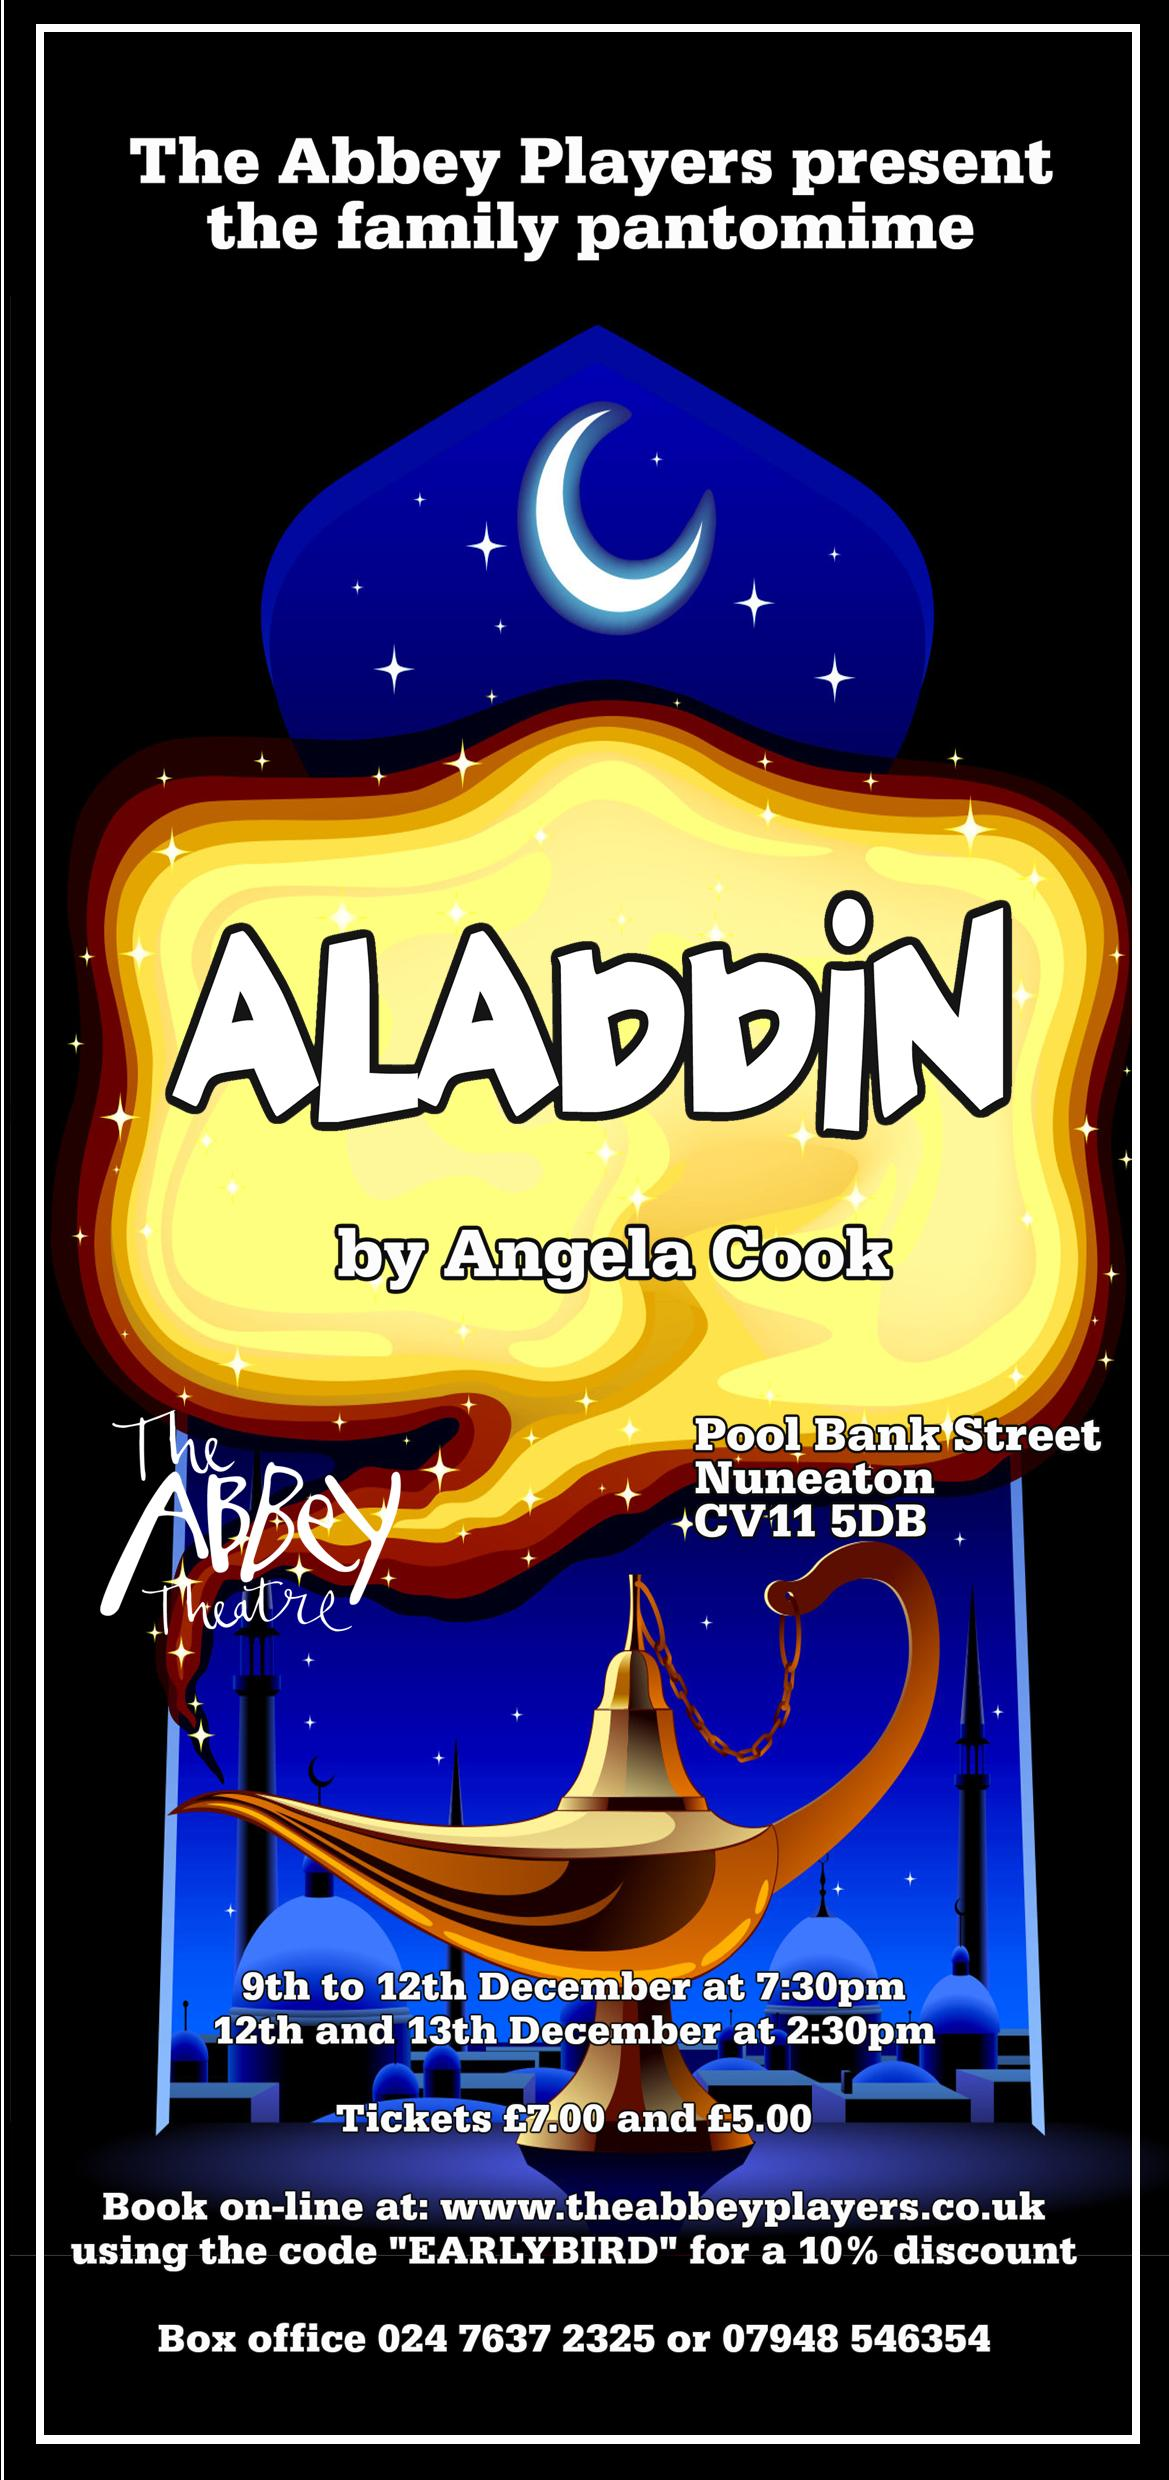 Abbey Players Present Aladdin By Angela Cook At The Theatre Event Tickets From TicketSource